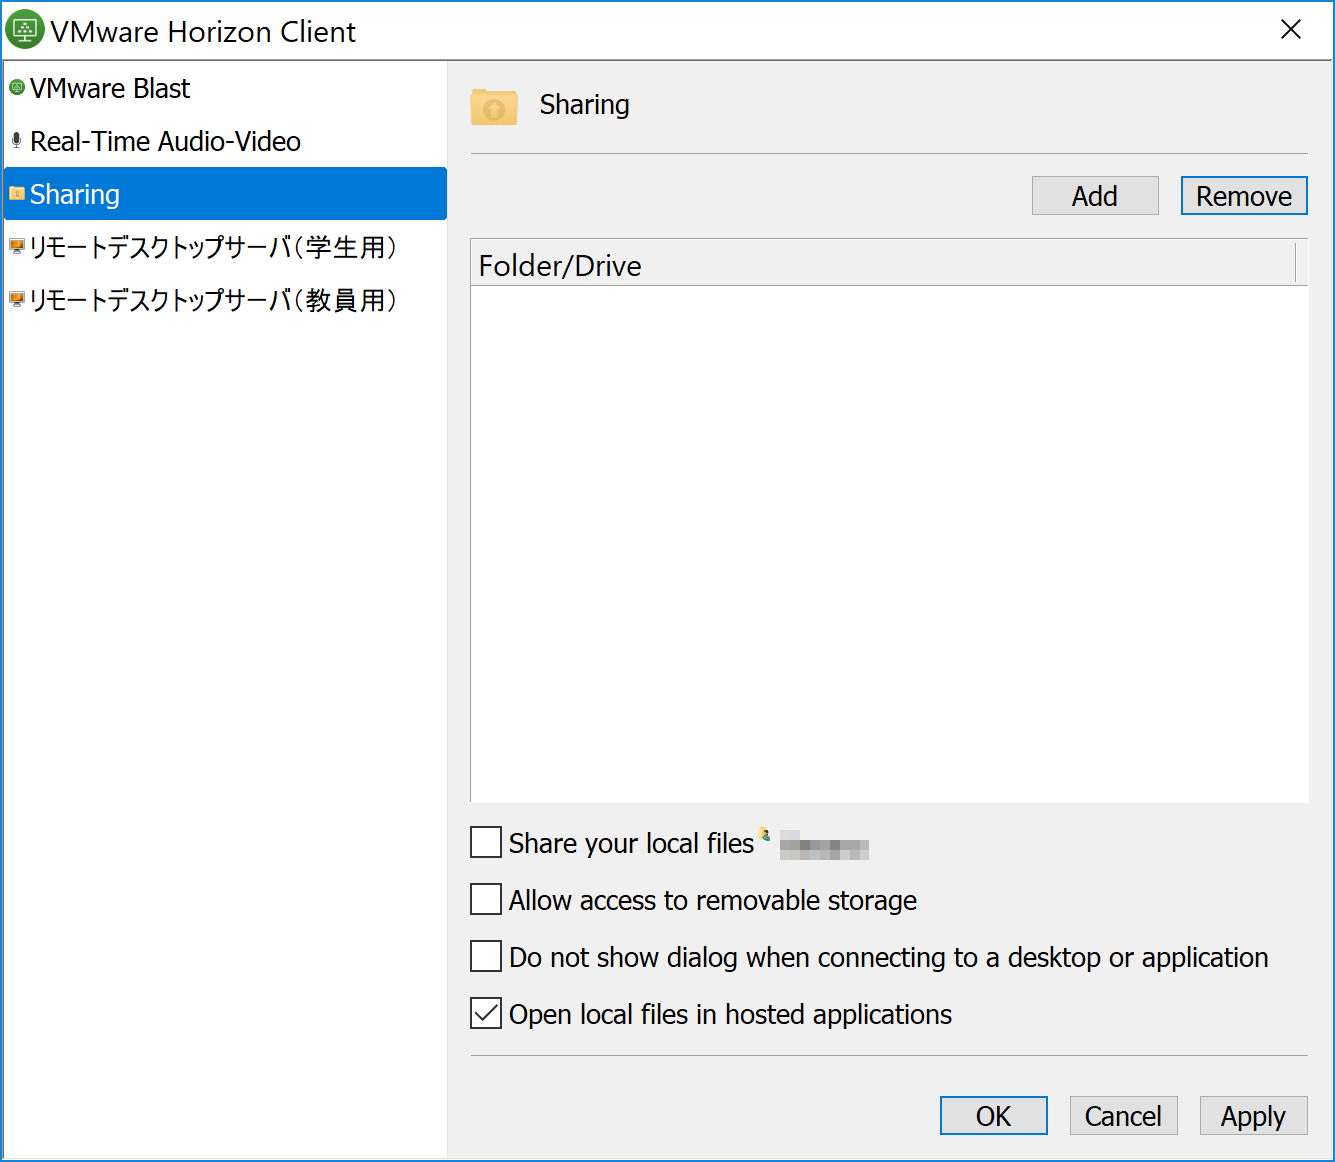 VMware Horizon Client - Sharing Settings